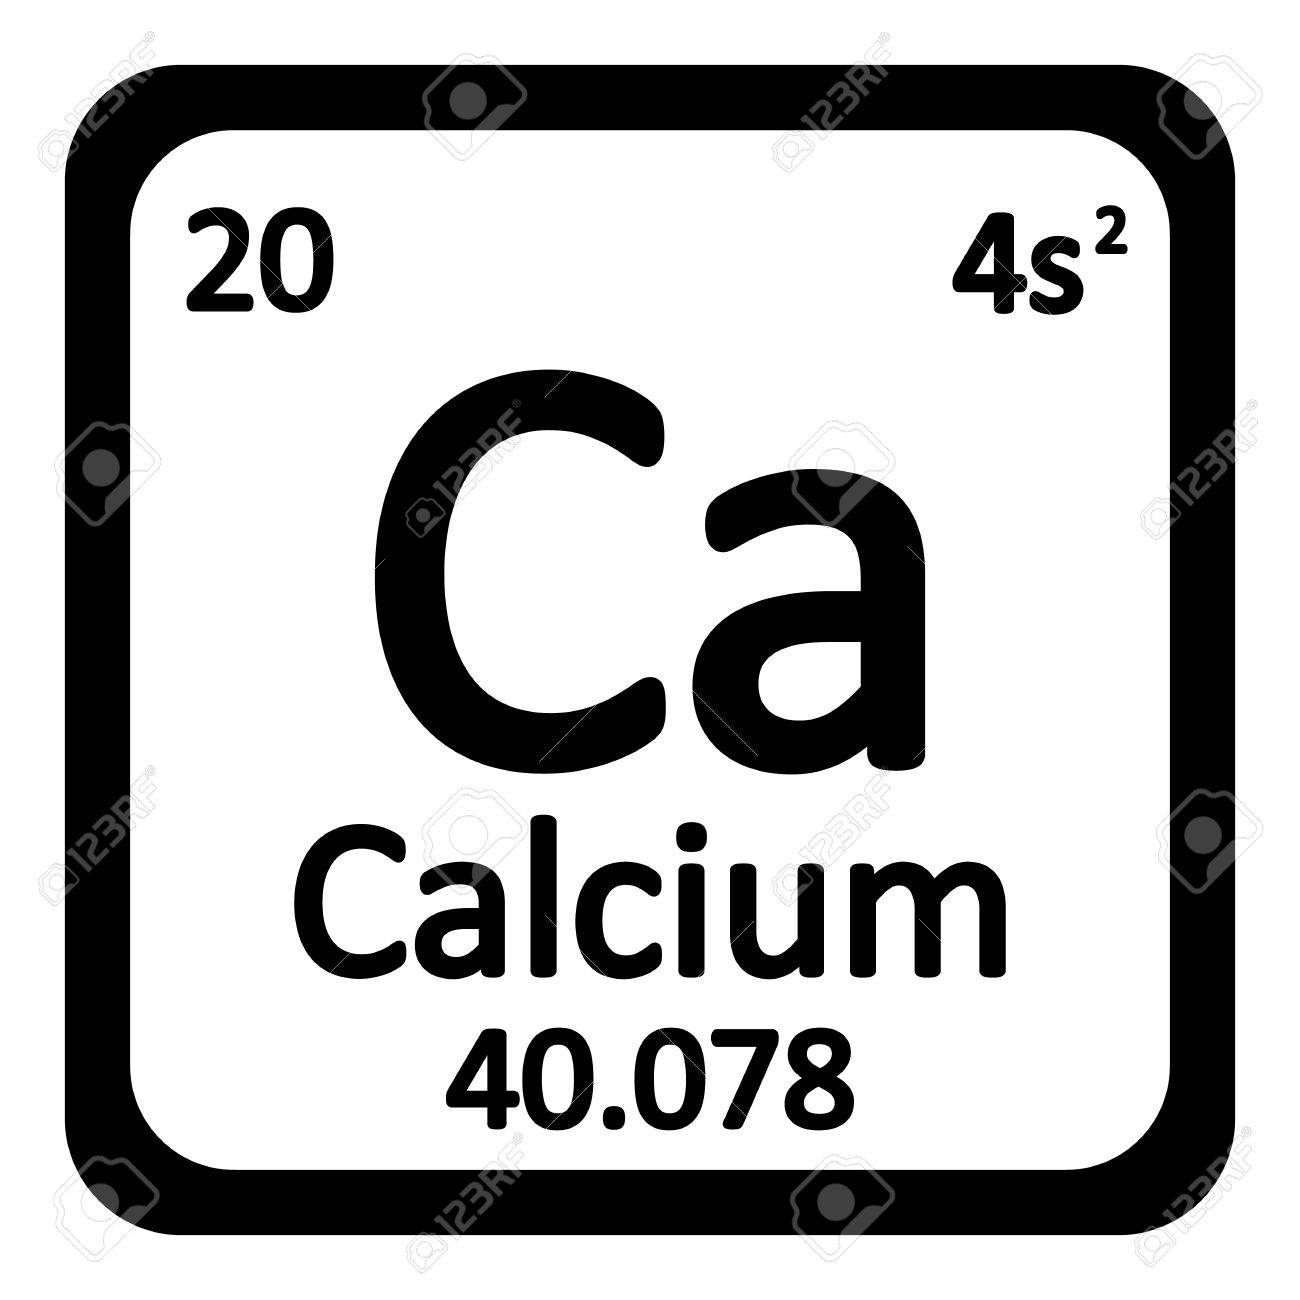 Periodic Table Element Calcium Symbol Auf Weiem Hintergrund Vektor